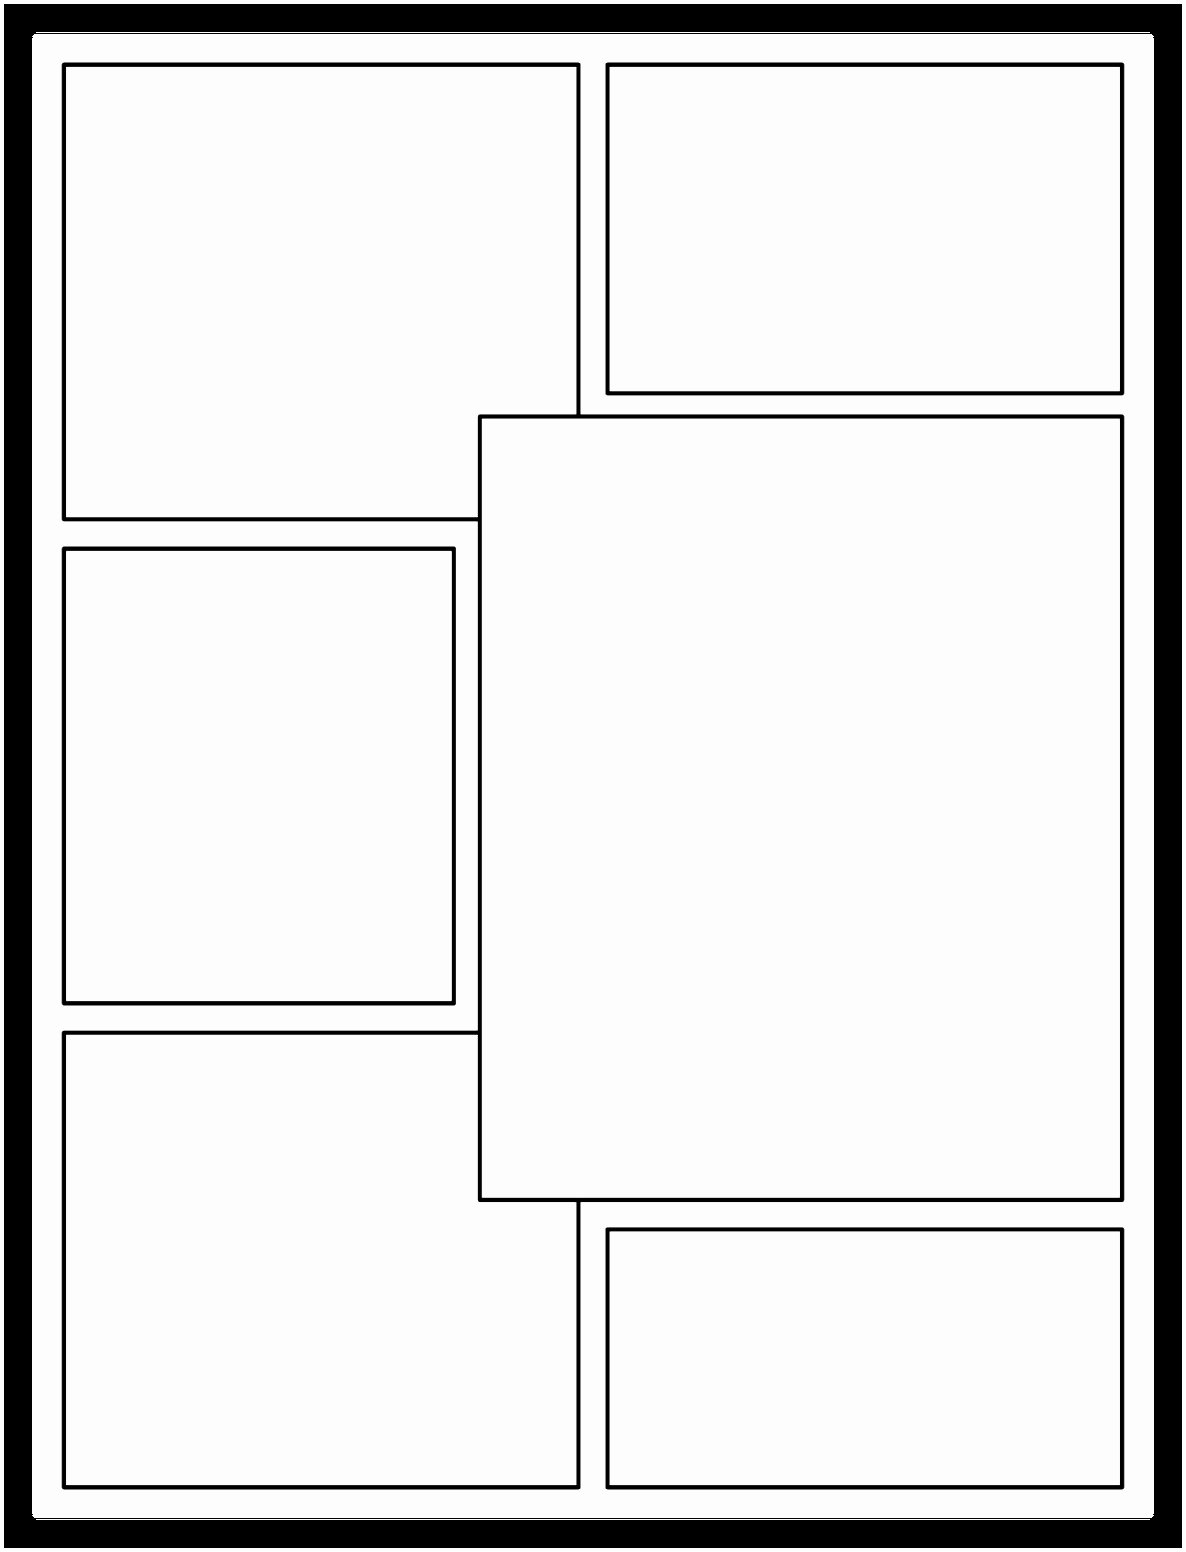 Comic Strip Template Pdf Lovely 9 Printable Blank Ic Strip Template for Kids Iowui